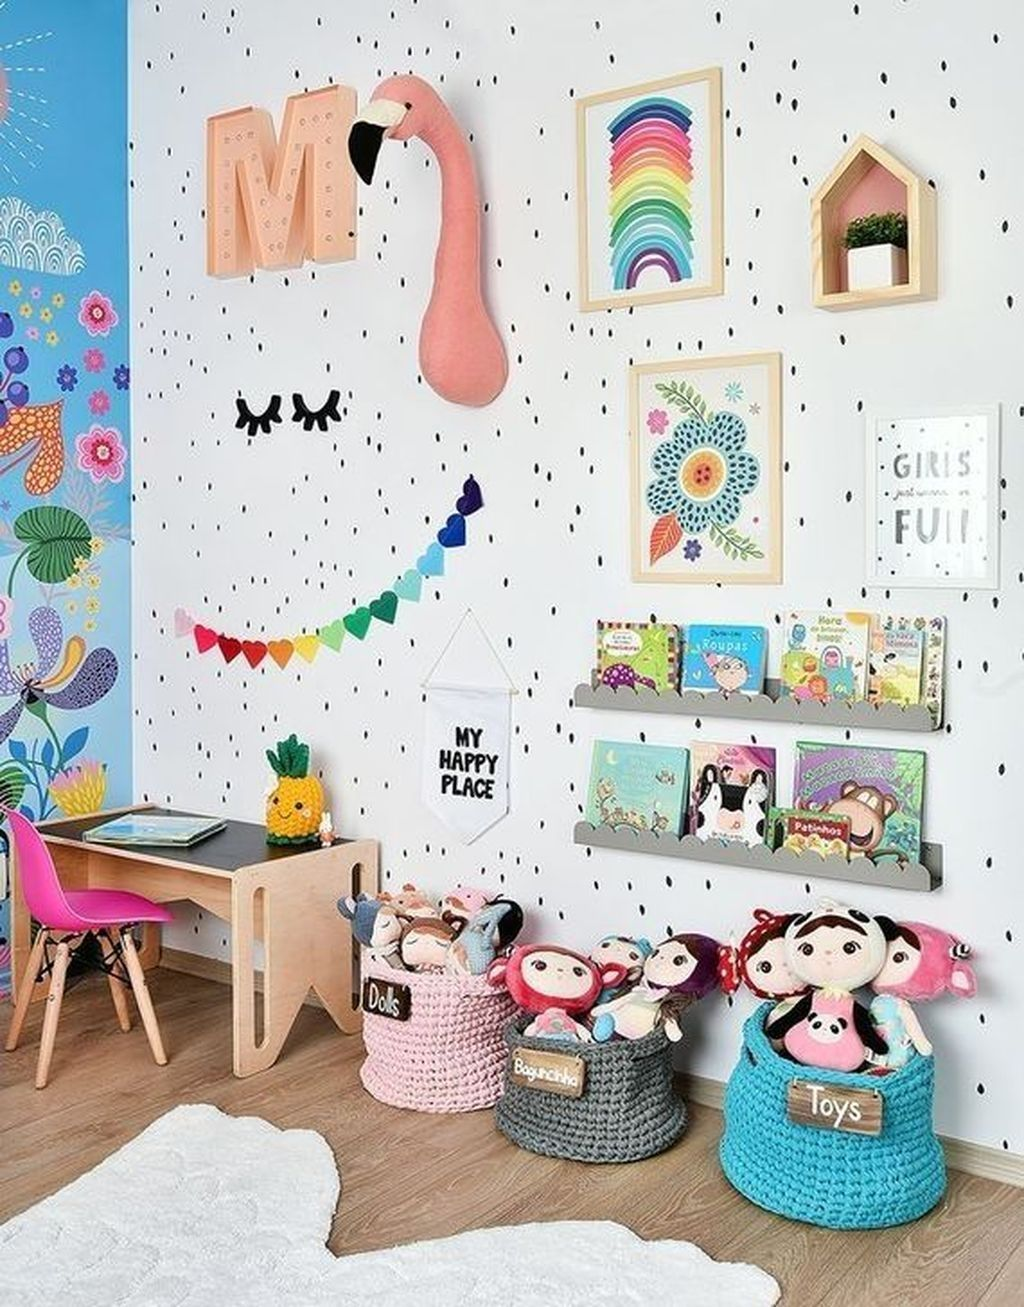 39 Casual Diy Kids Room Ideas To Rock Your Home images